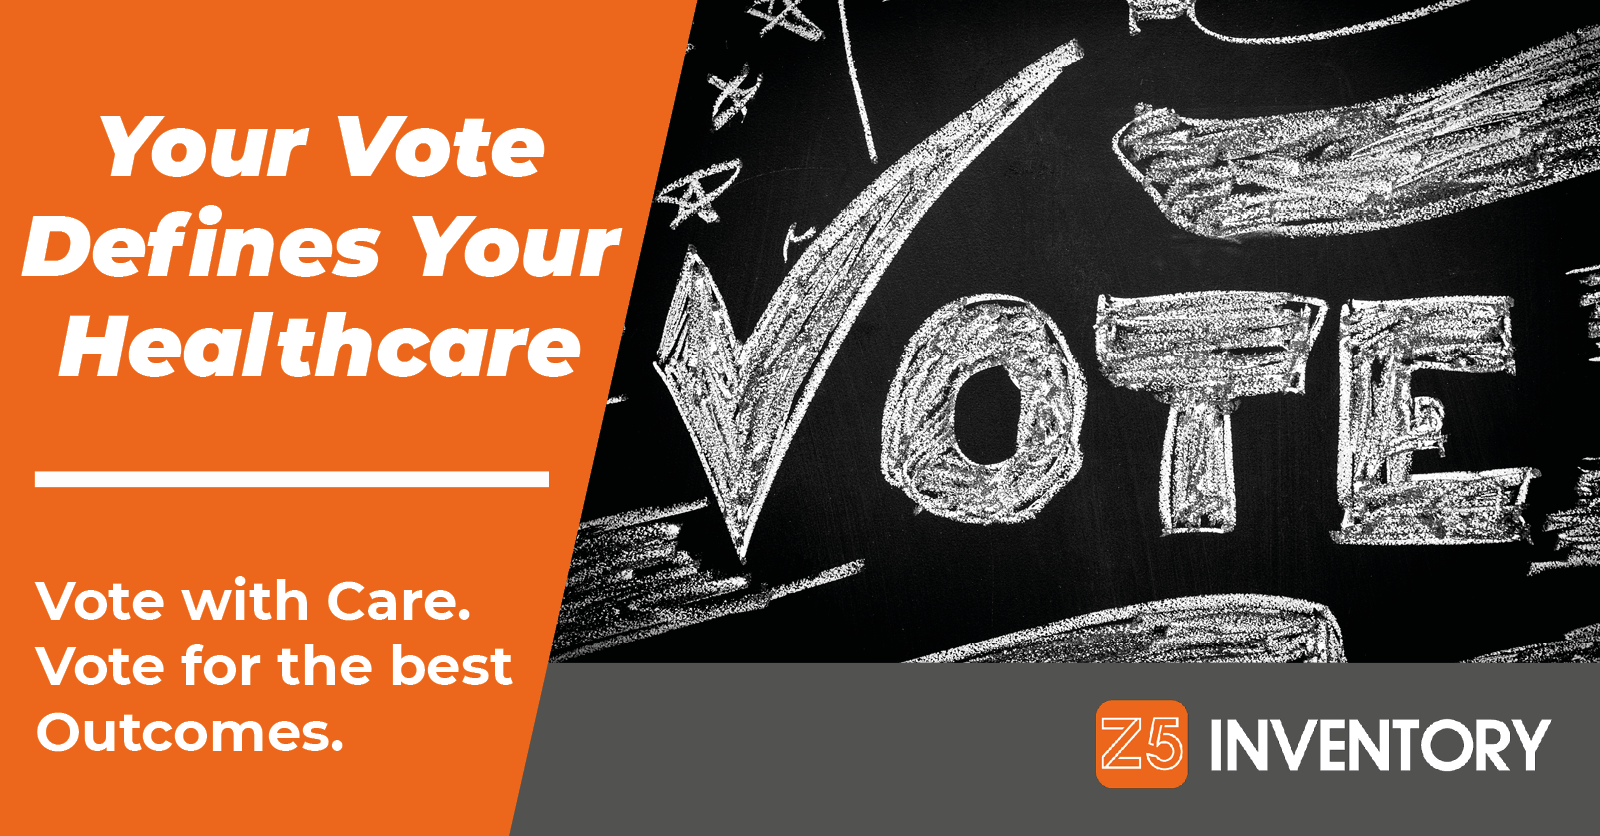 Vote Like Your Healthcare Depends On It. Because It Does.